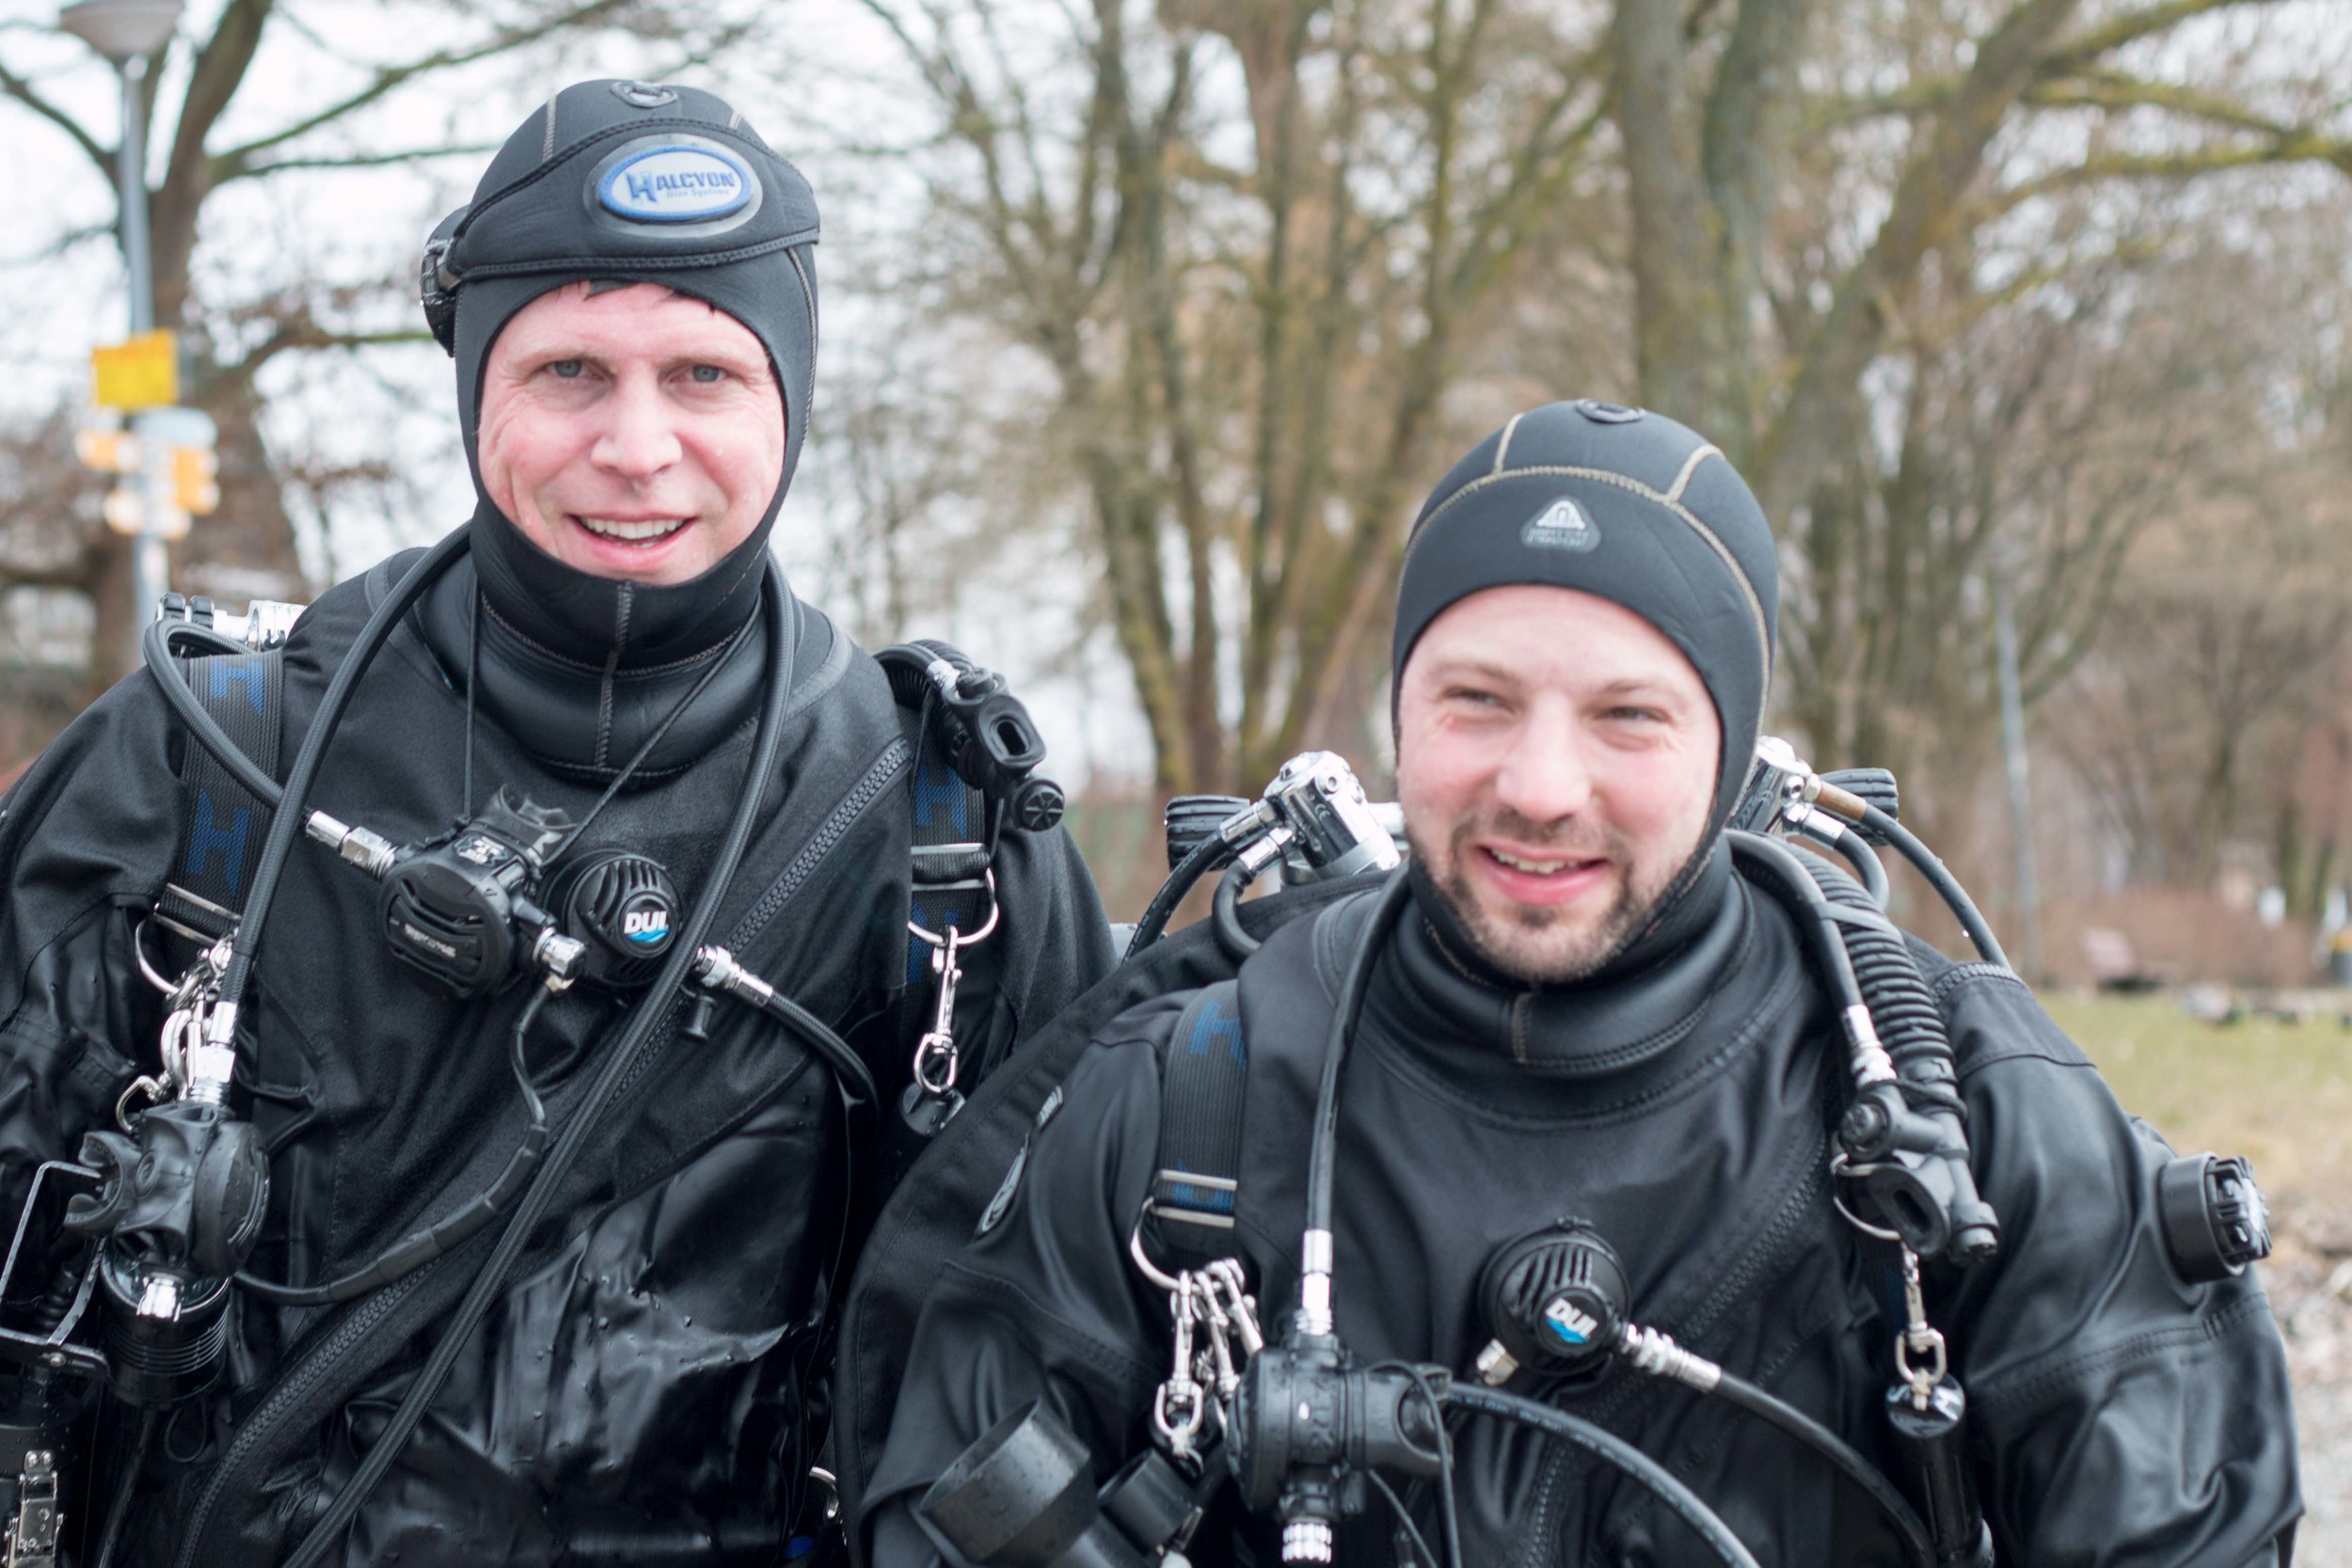 Dive buddies that were doing Tech diving this weekend